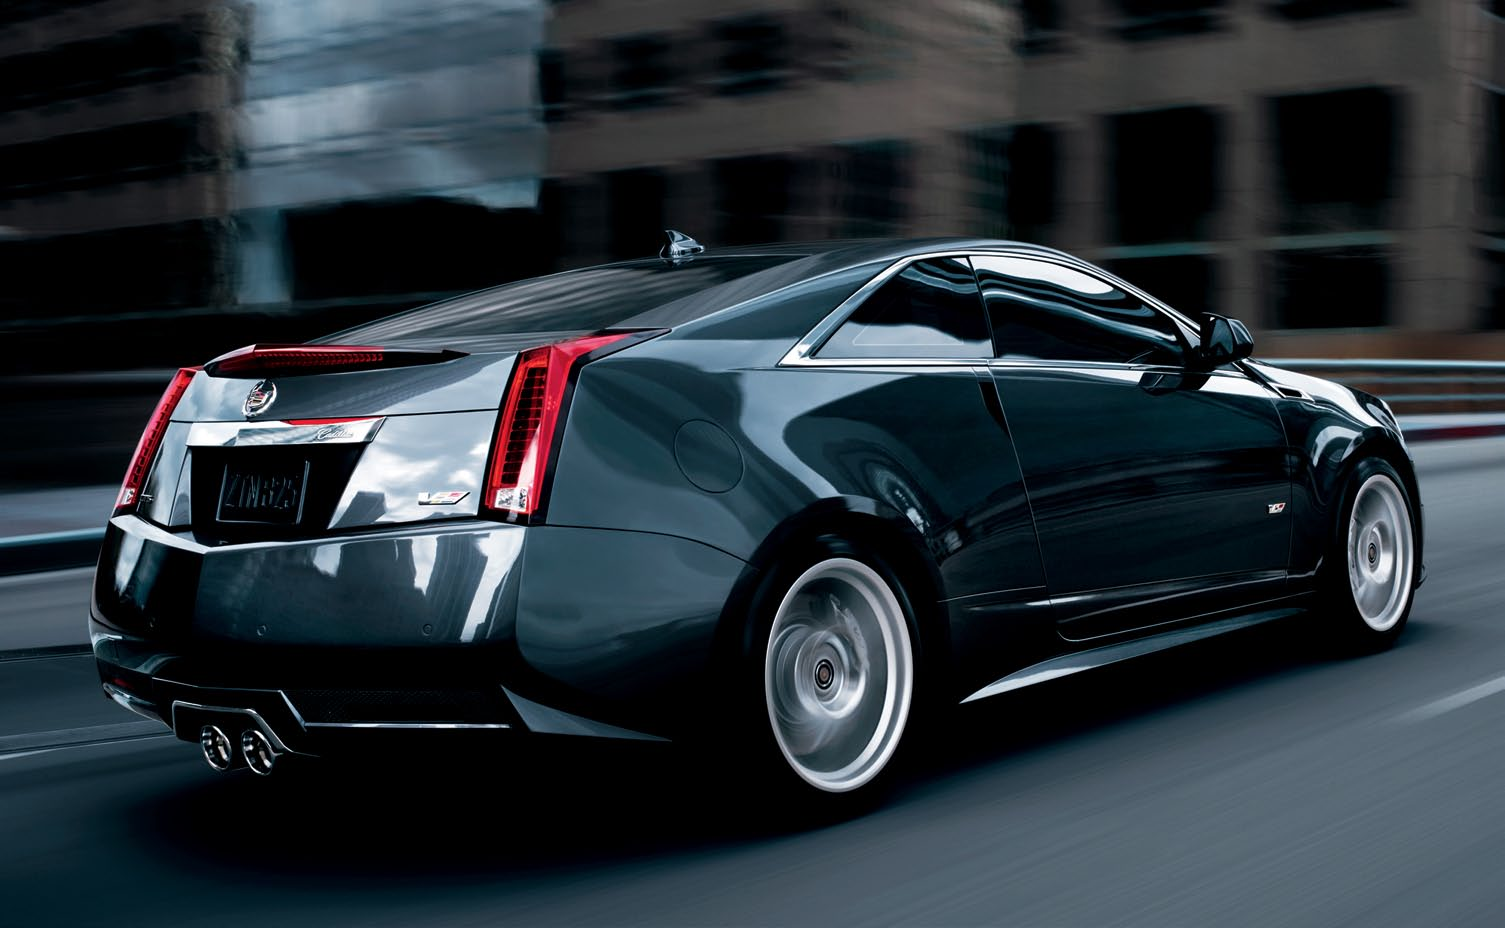 2011 cadillac cts coupe hot car pictures. Black Bedroom Furniture Sets. Home Design Ideas